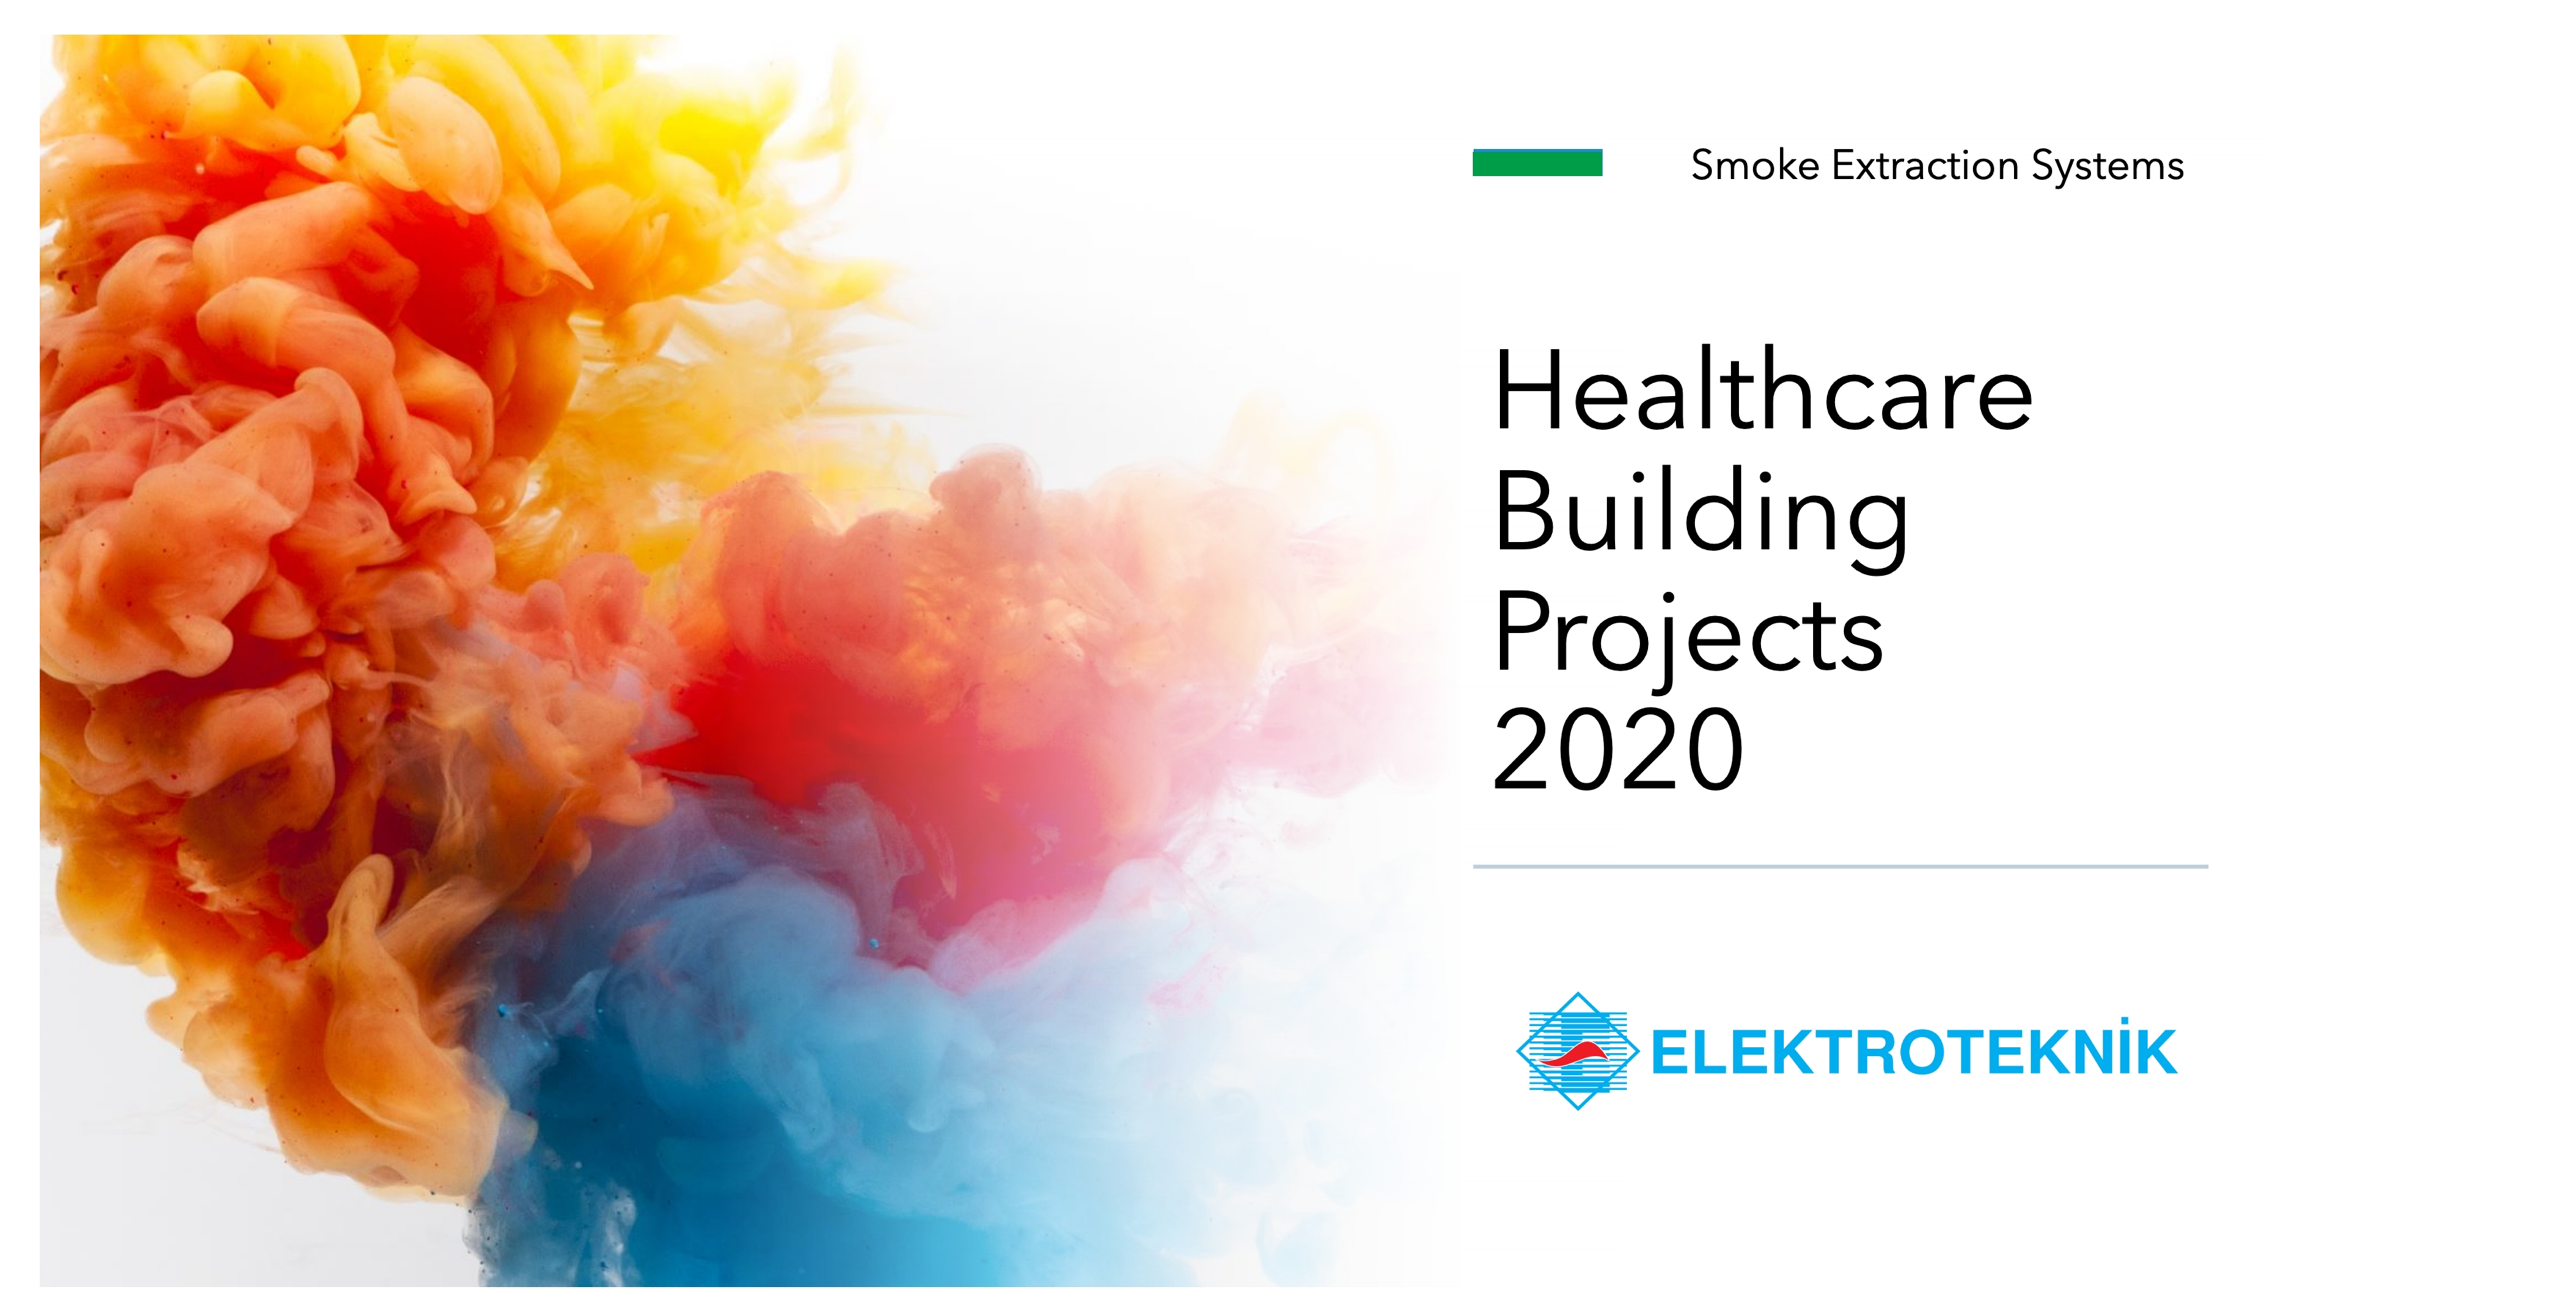 Smoke Extraction Systems for Healthcare Building Projects 2020